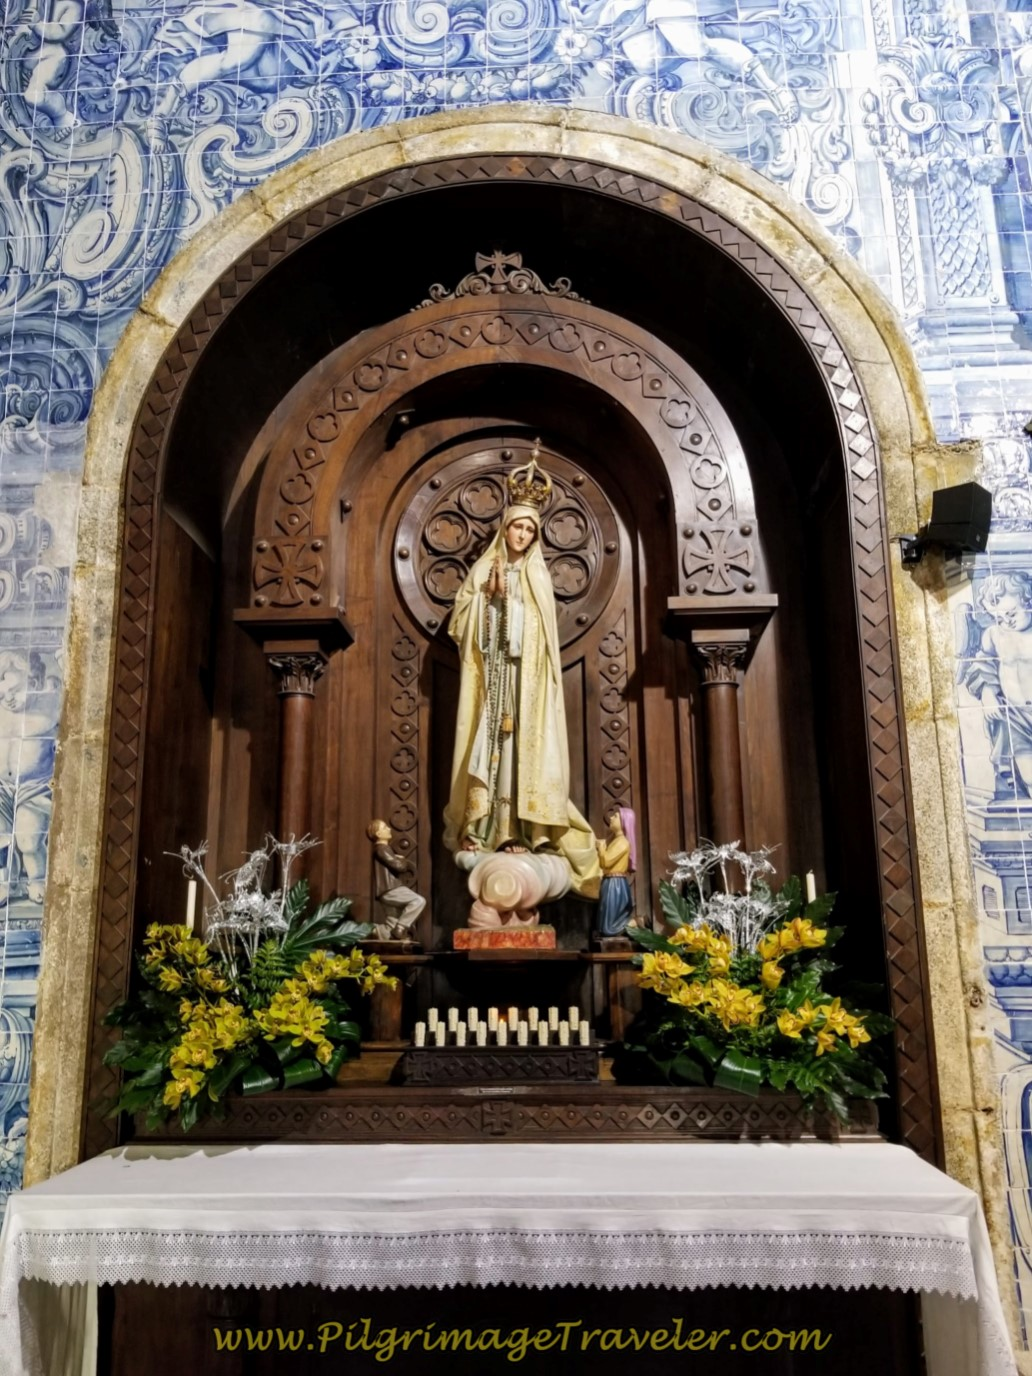 Fátima Altar in the Igreja Matriz de Barcelos, Portugal